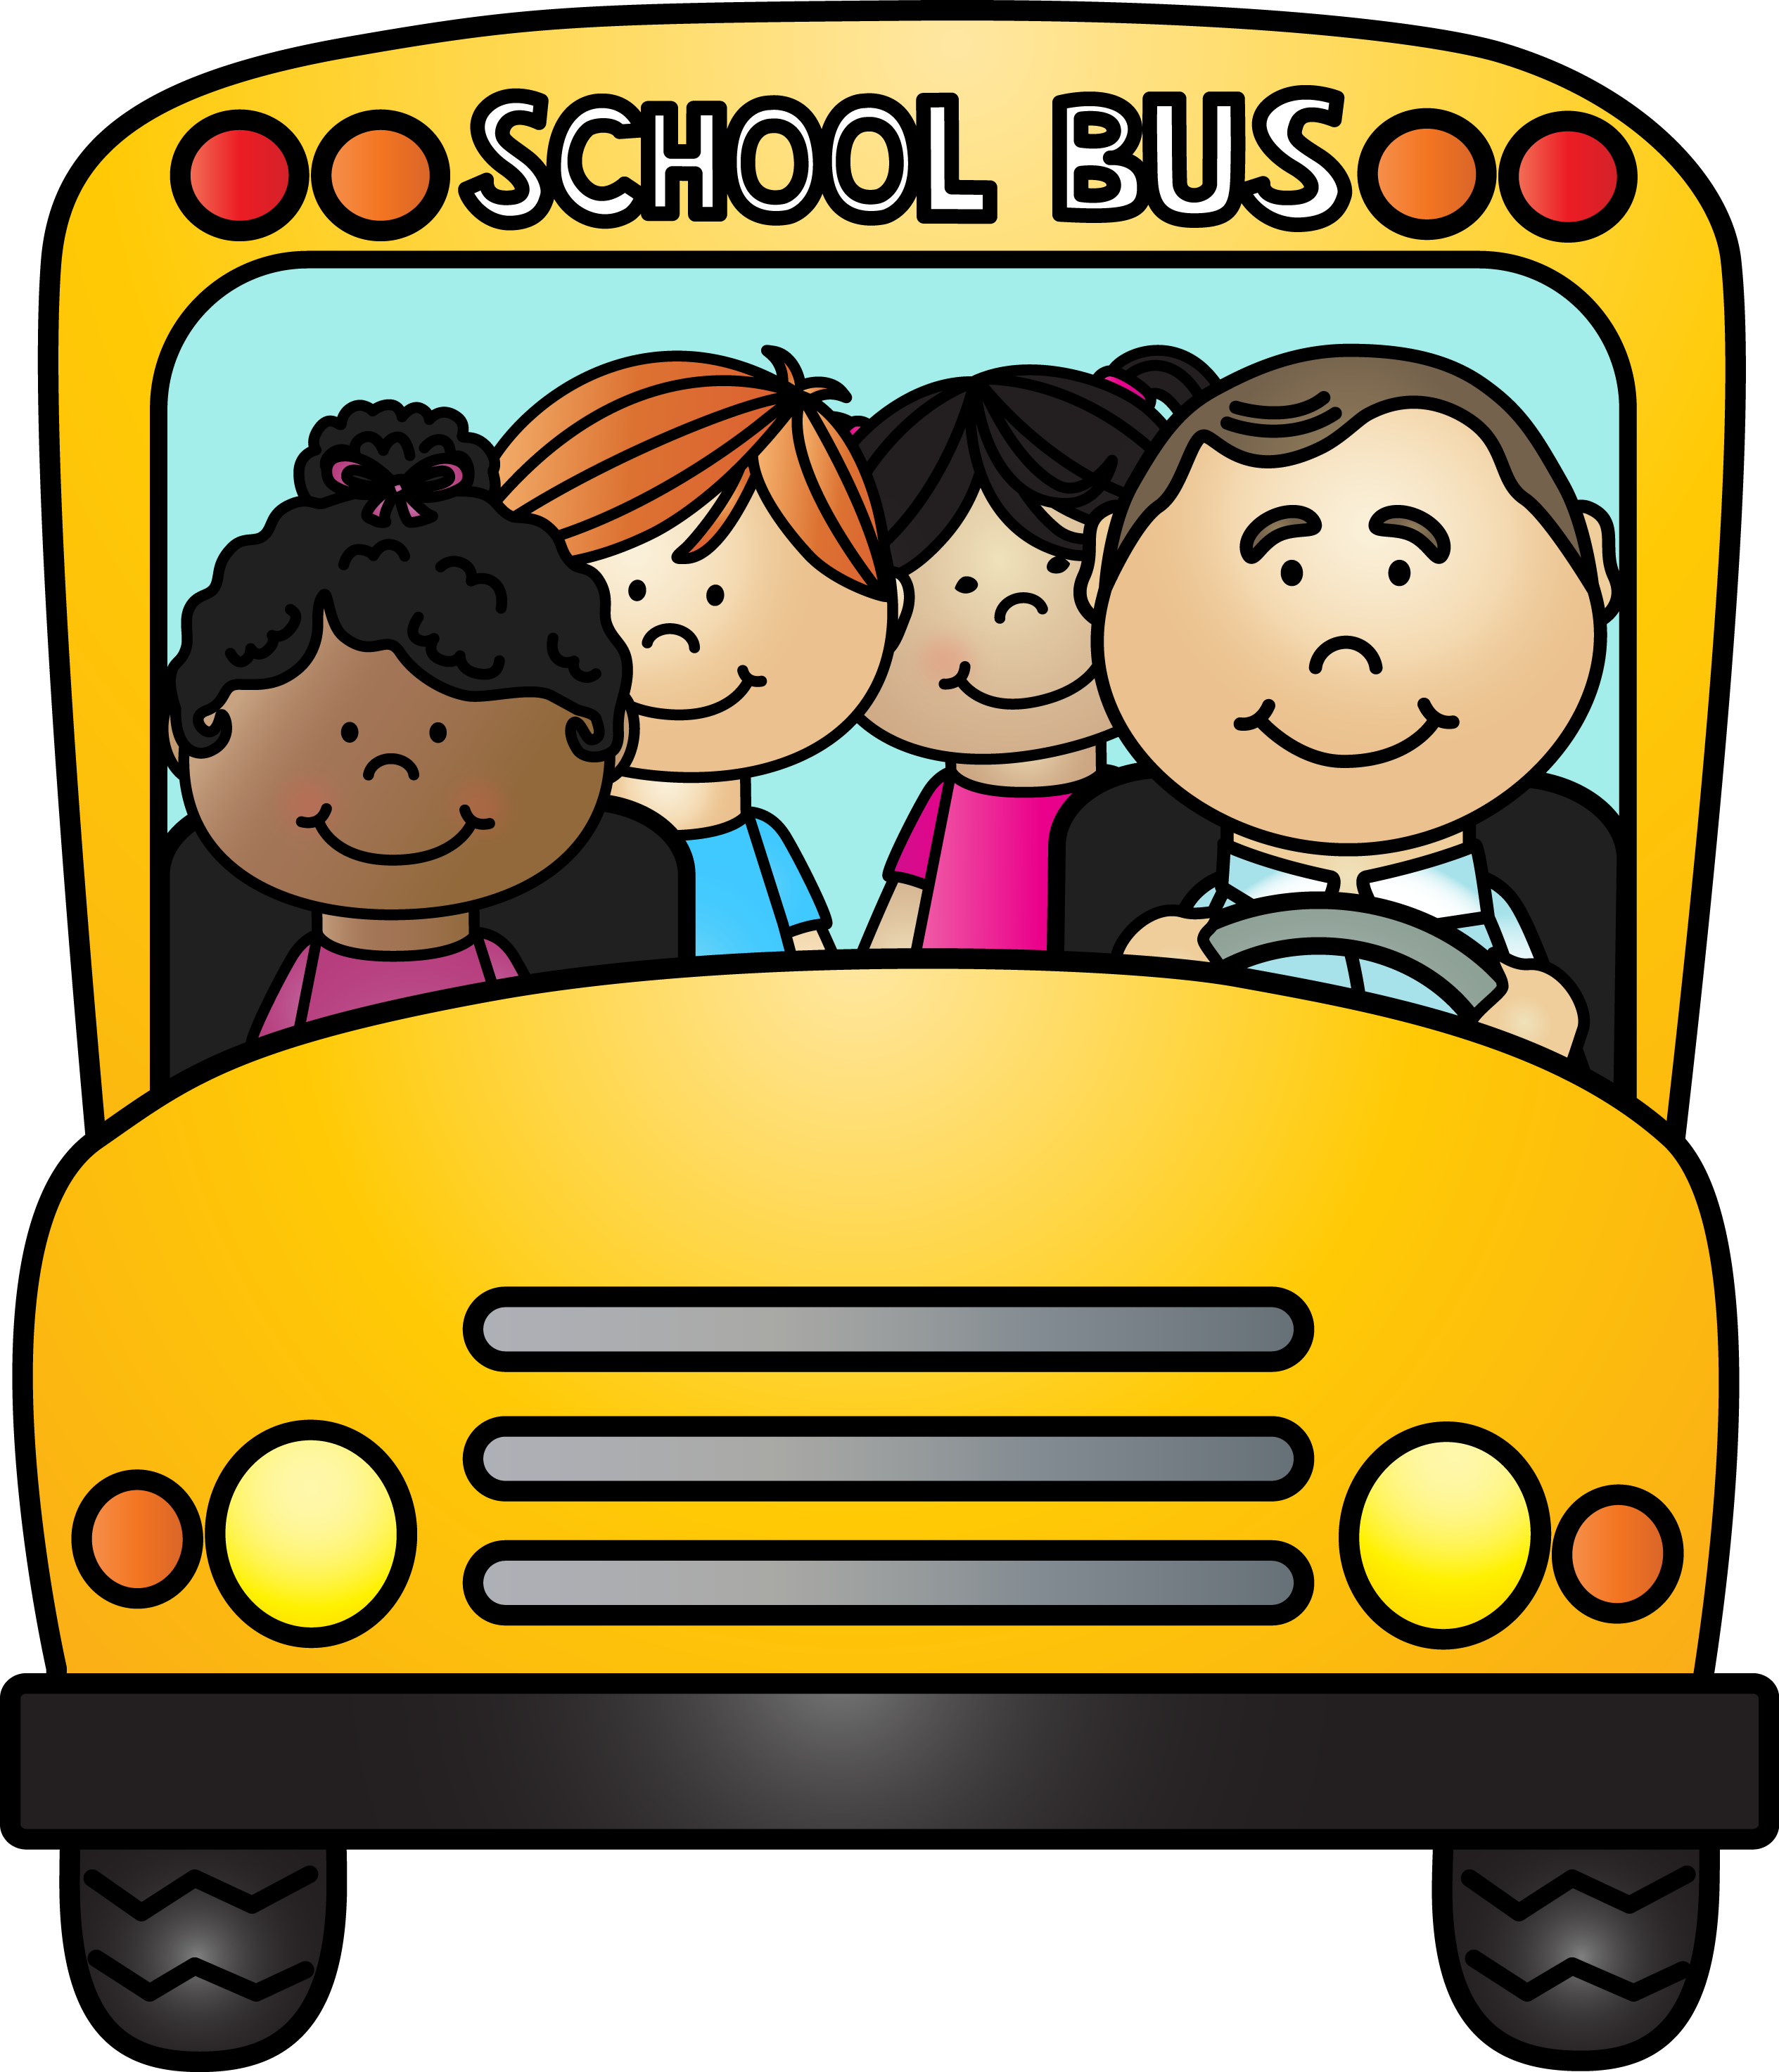 kids-on-school-bus_WhimsyClips.png